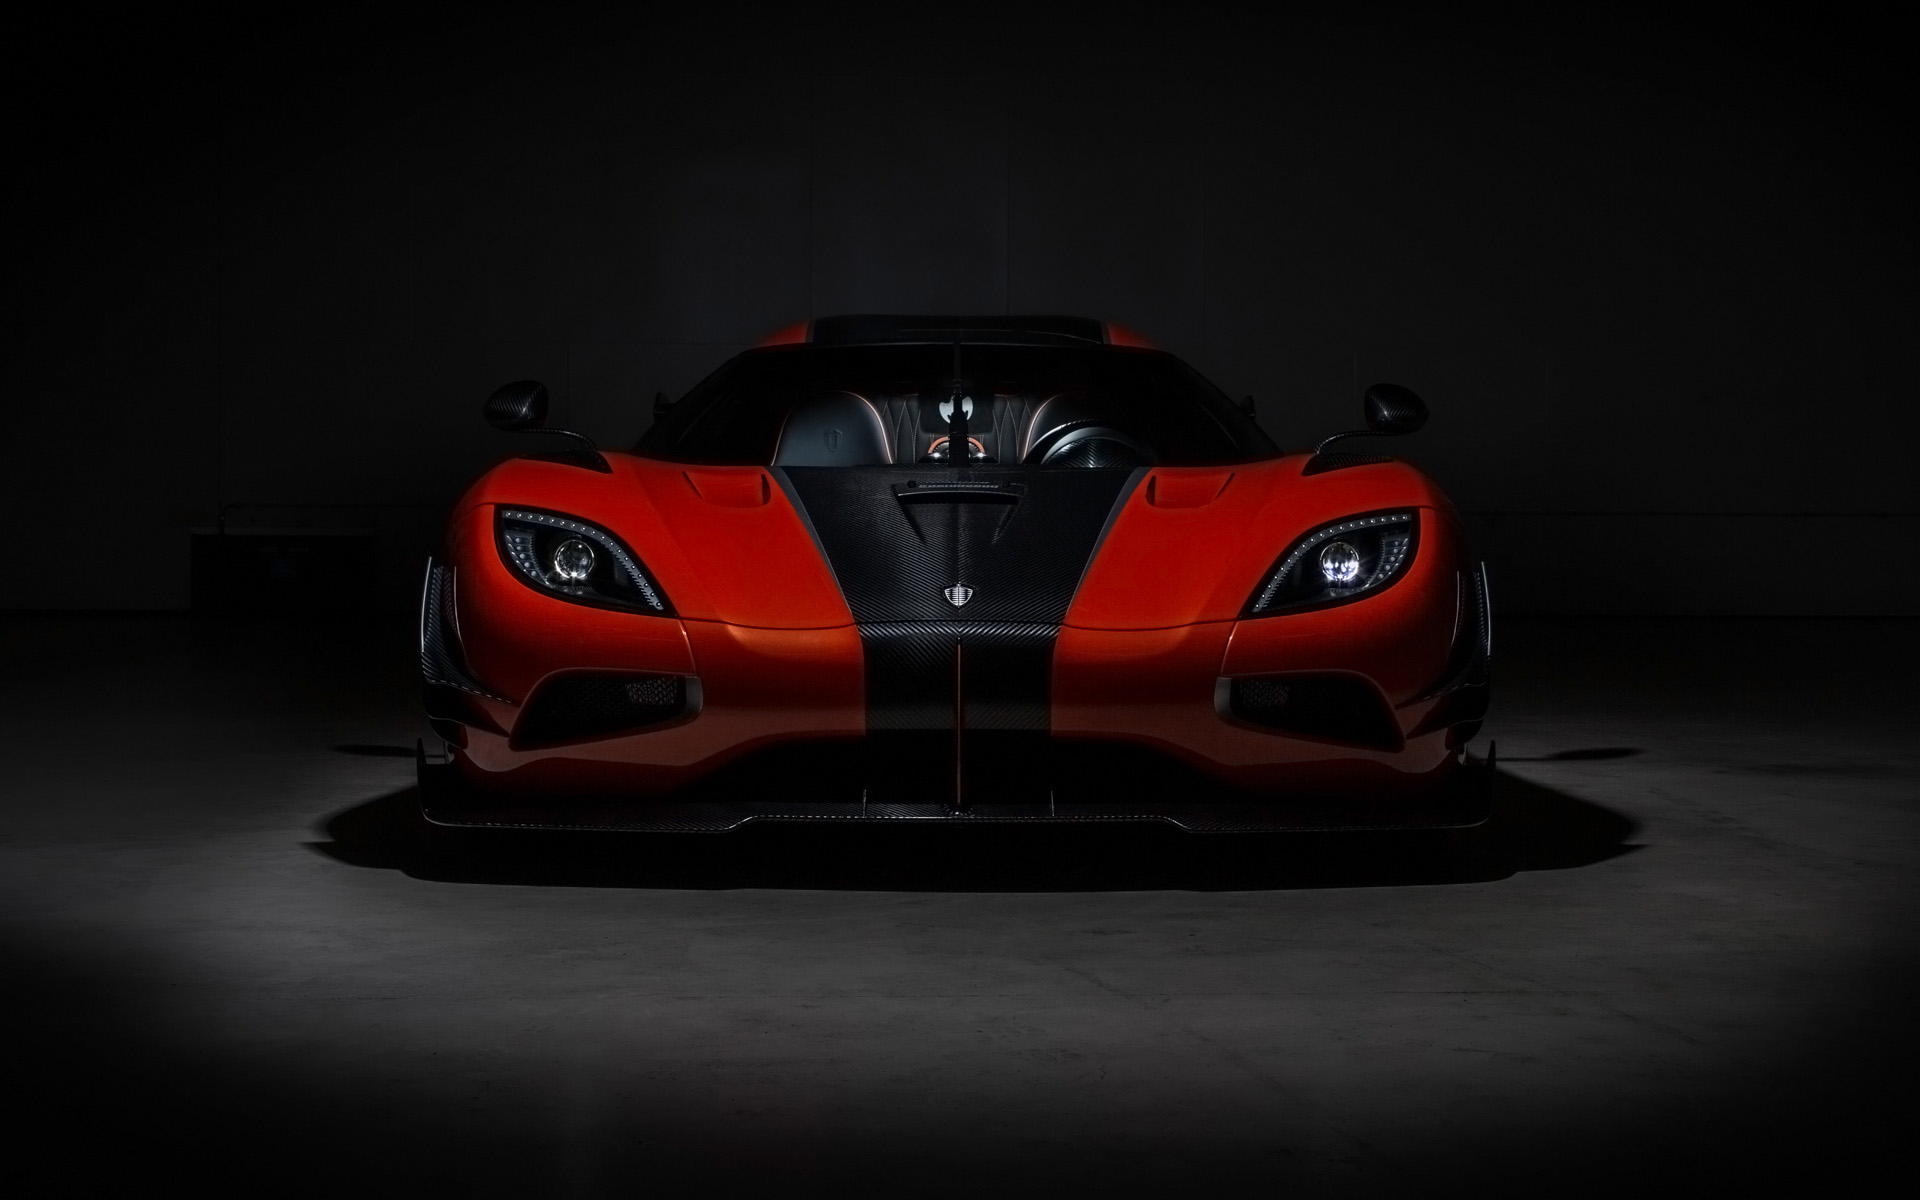 Rolls Royce Car Wallpaper Free Download 2016 Koenigsegg Agera Final One Of One Wallpaper Hd Car